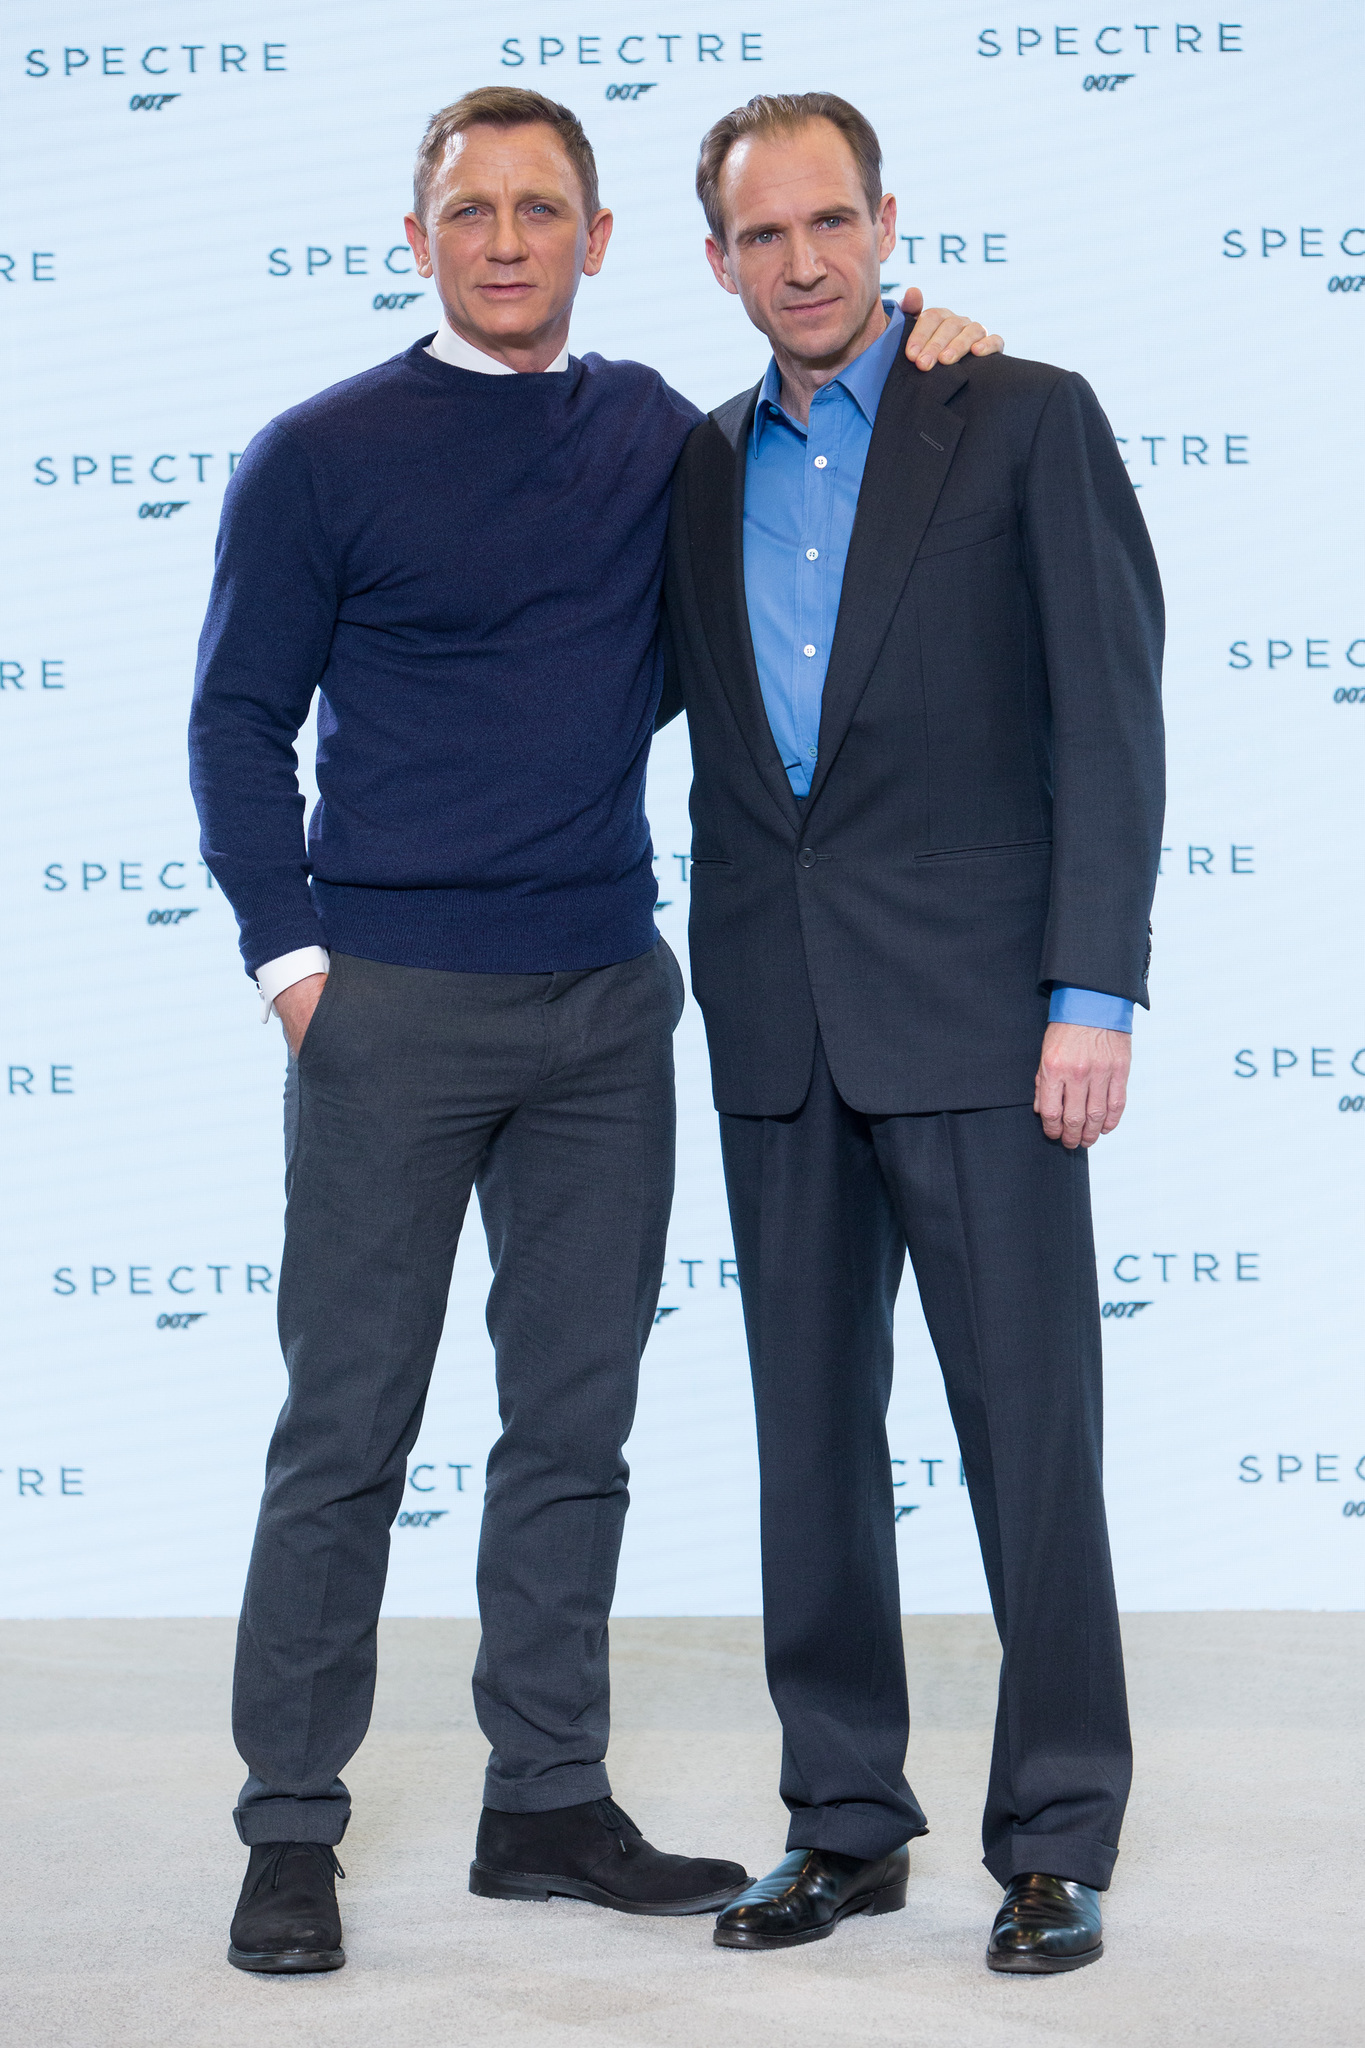 Ralph Fiennes and Daniel Craig at an event for Spectre (2015)